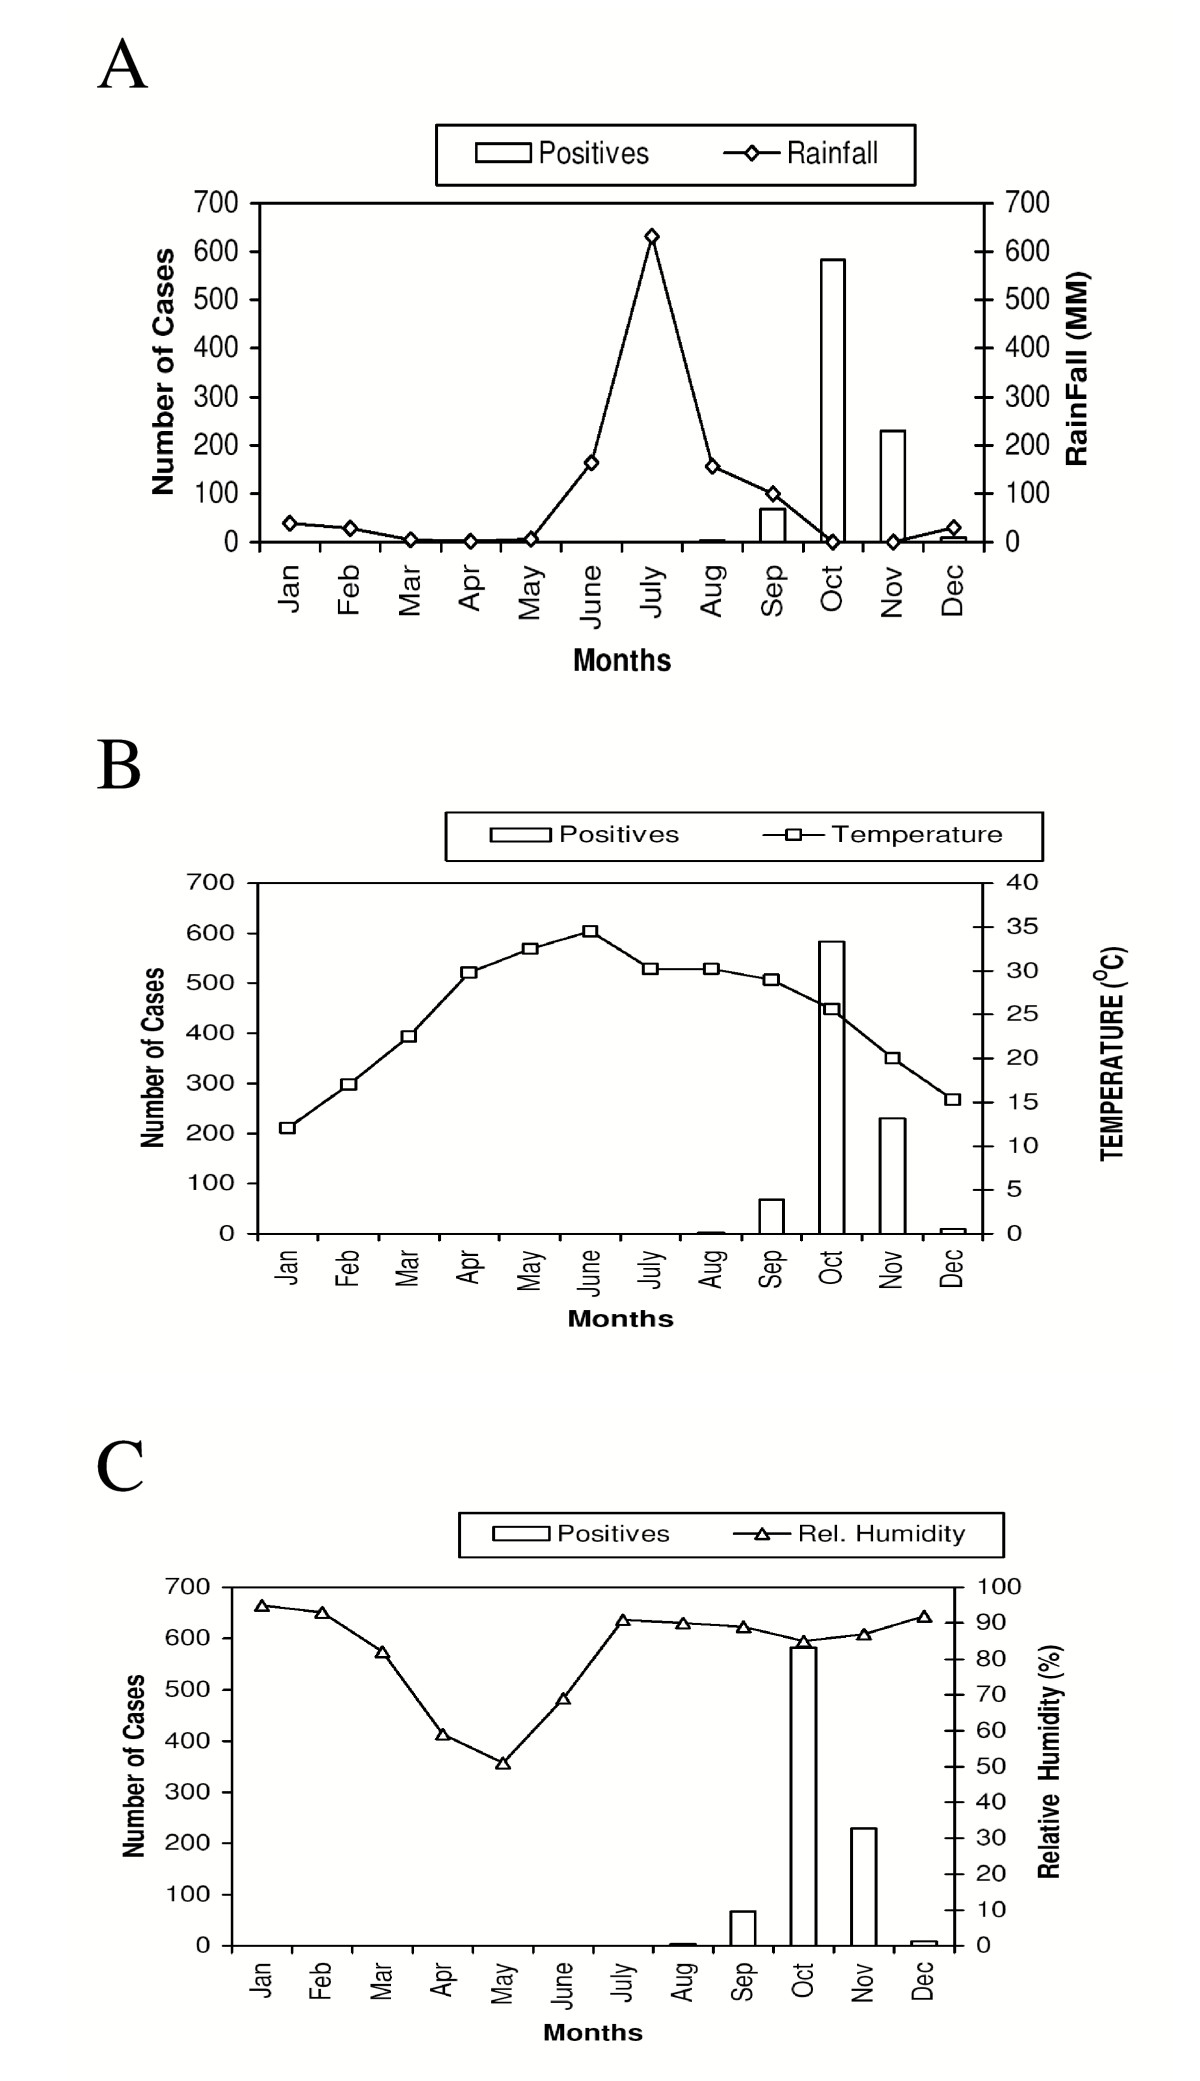 http://static-content.springer.com/image/art%3A10.1186%2F1743-422X-2-32/MediaObjects/12985_2005_Article_47_Fig2_HTML.jpg